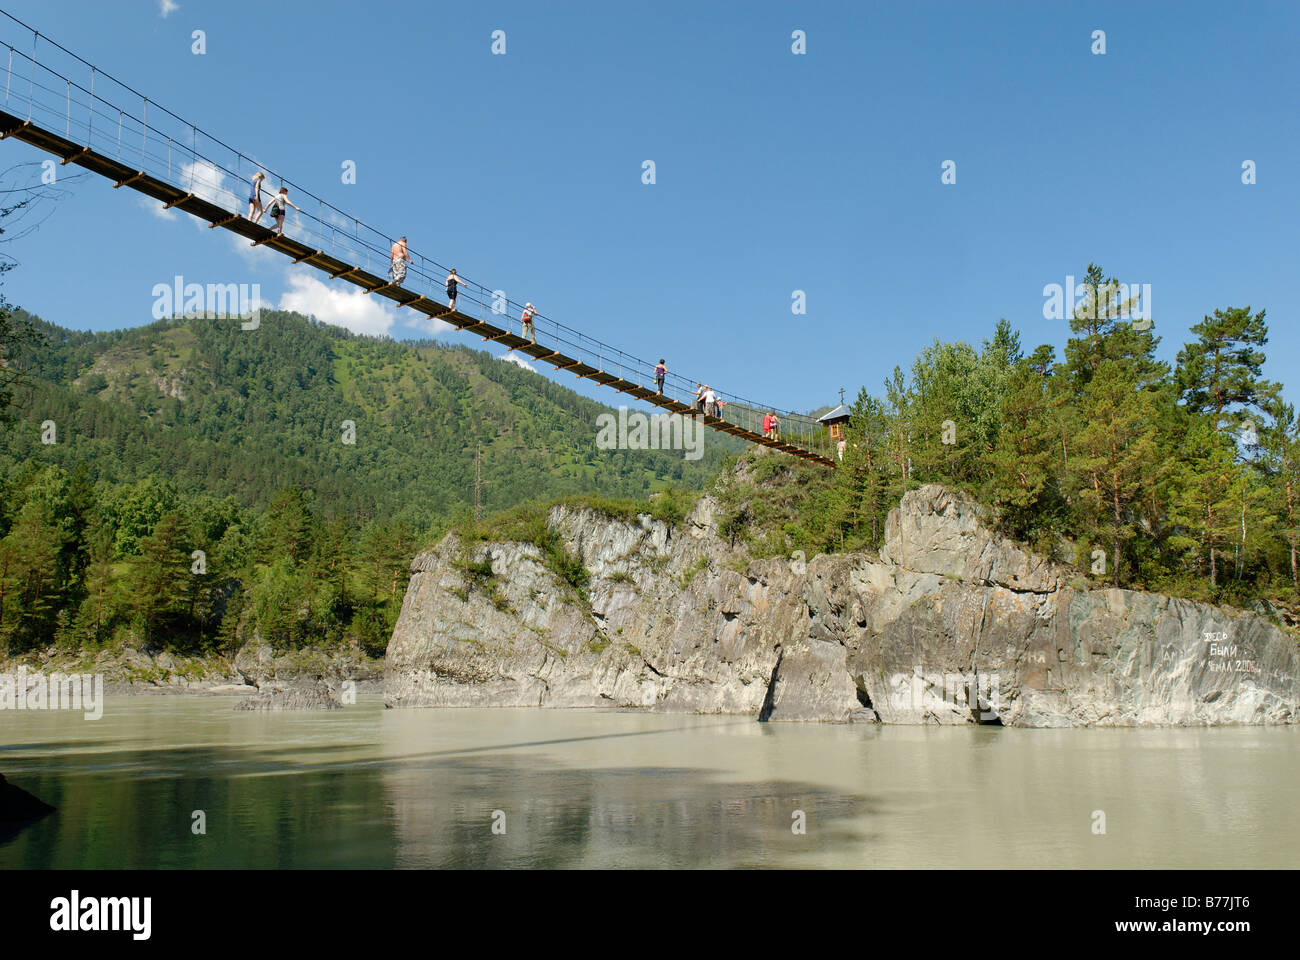 In Altai, Sibmost will build a bridge and reconstruct the Chui road 91